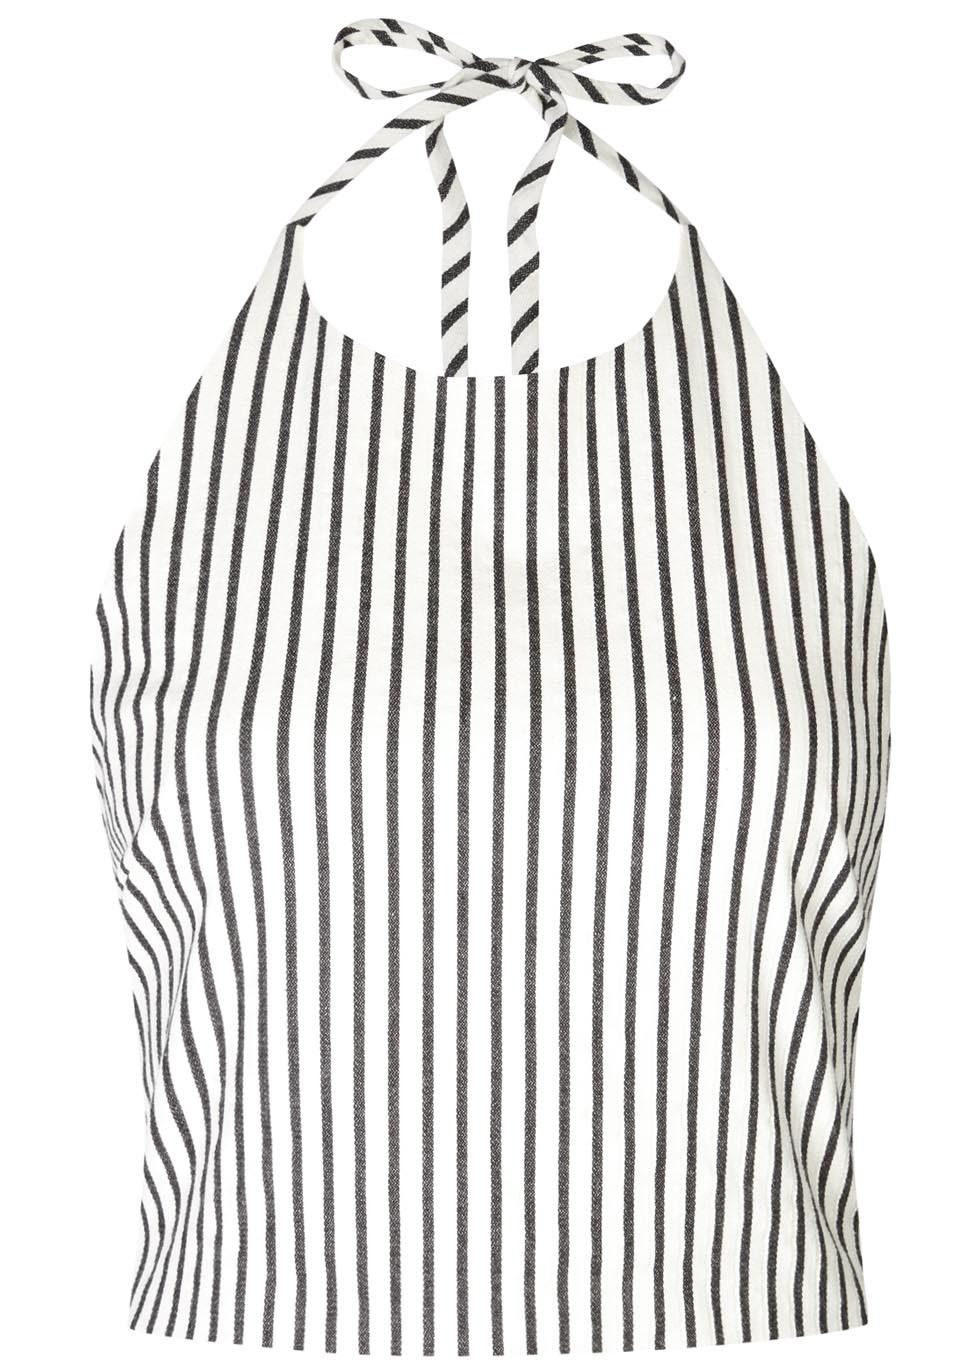 Jaymee Striped Cropped Cotton Top - sleeve style: sleeveless; pattern: striped; length: cropped; neckline: low halter neck; secondary colour: white; predominant colour: black; occasions: casual, holiday; style: top; fibres: cotton - mix; fit: body skimming; sleeve length: sleeveless; texture group: cotton feel fabrics; pattern type: fabric; pattern size: standard; season: s/s 2016; wardrobe: highlight